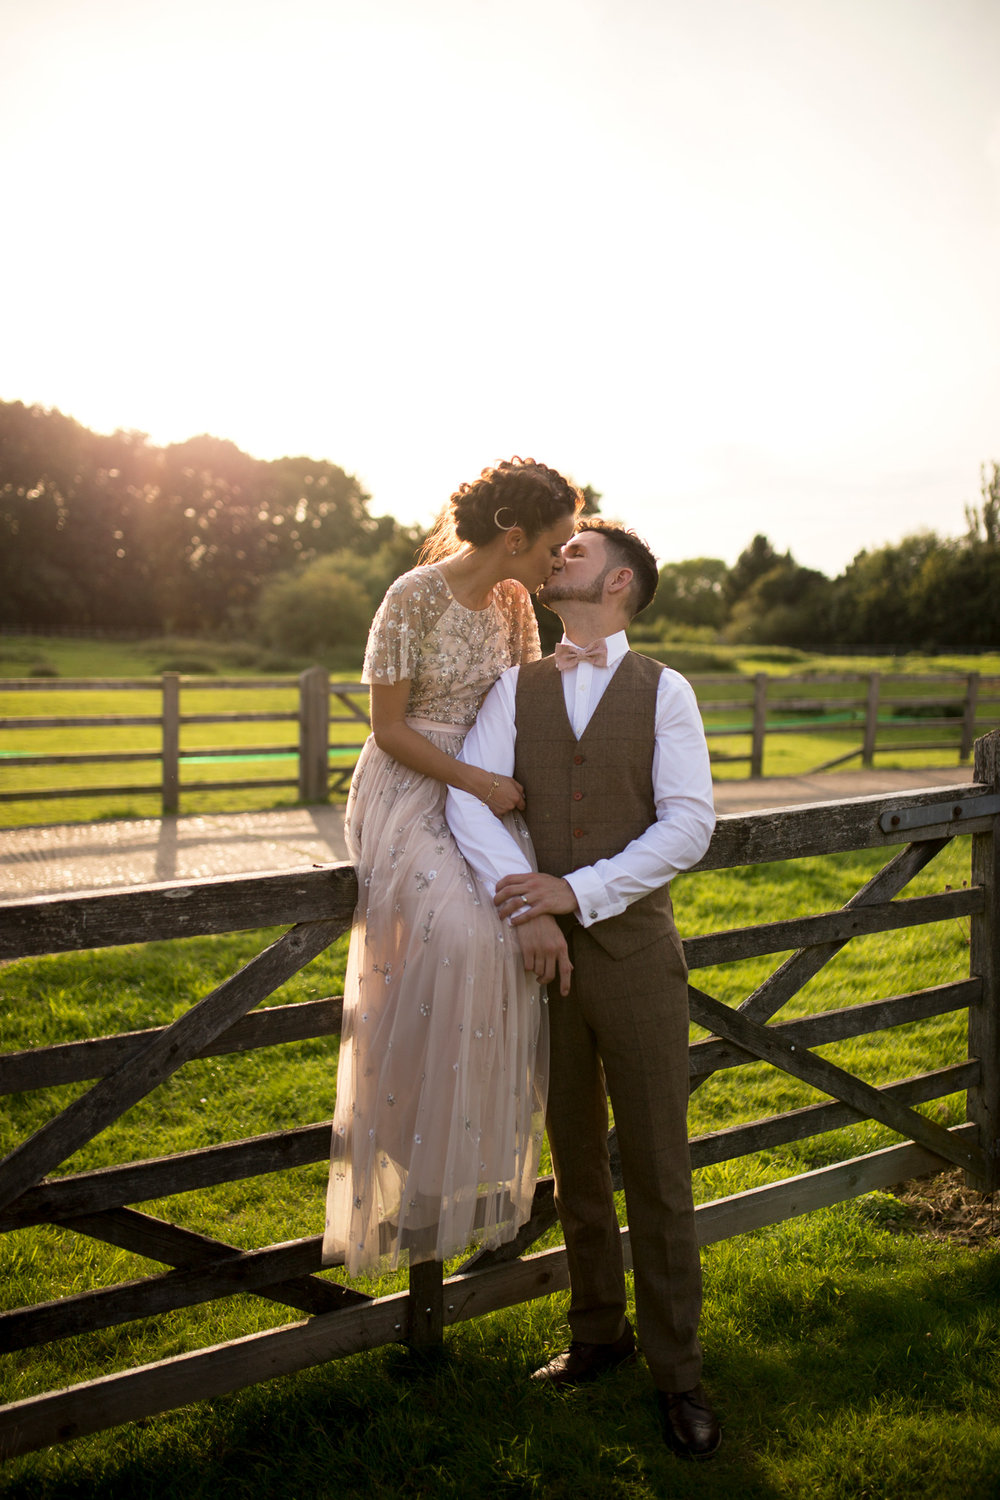 Couple, Kissing Gate, Happy, Wedding Day, Sunset, Bedfordshire Wedding,